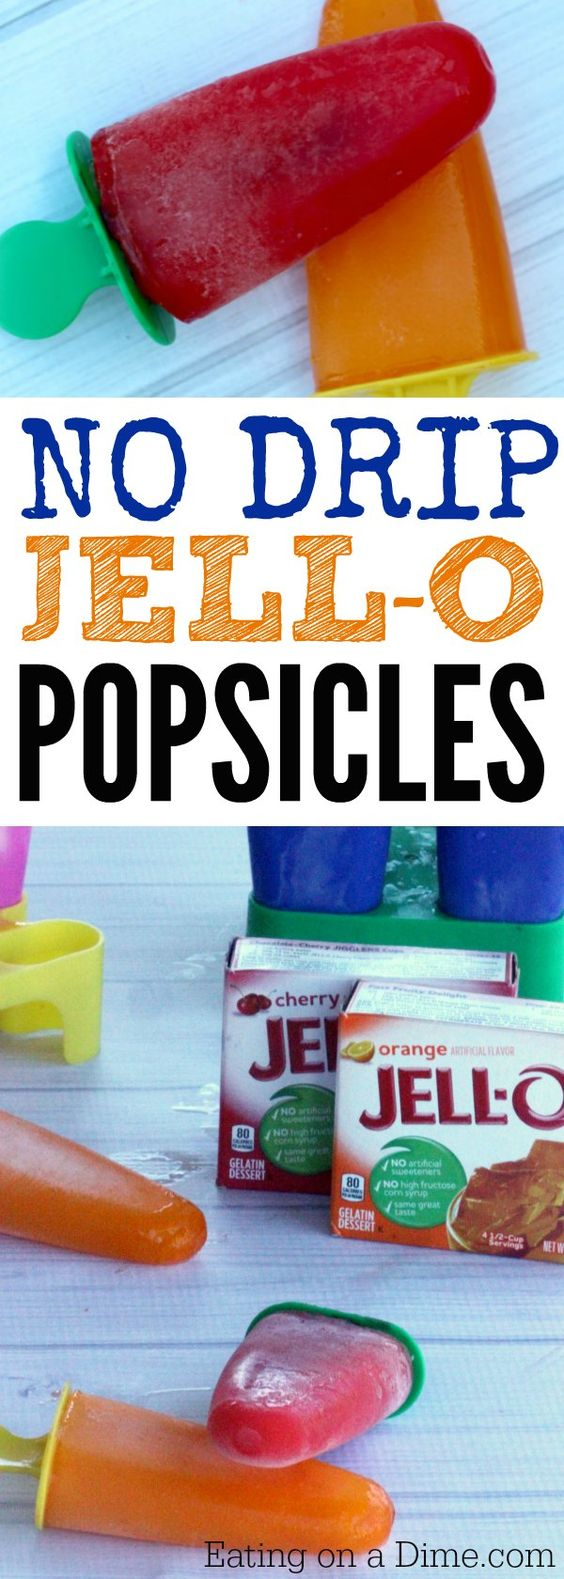 Easy to make jell-o popsicles. How to make popsicles easily with Jell-O. These homemade popsicles are delicious and they do not drip! The best DIY Popsicles